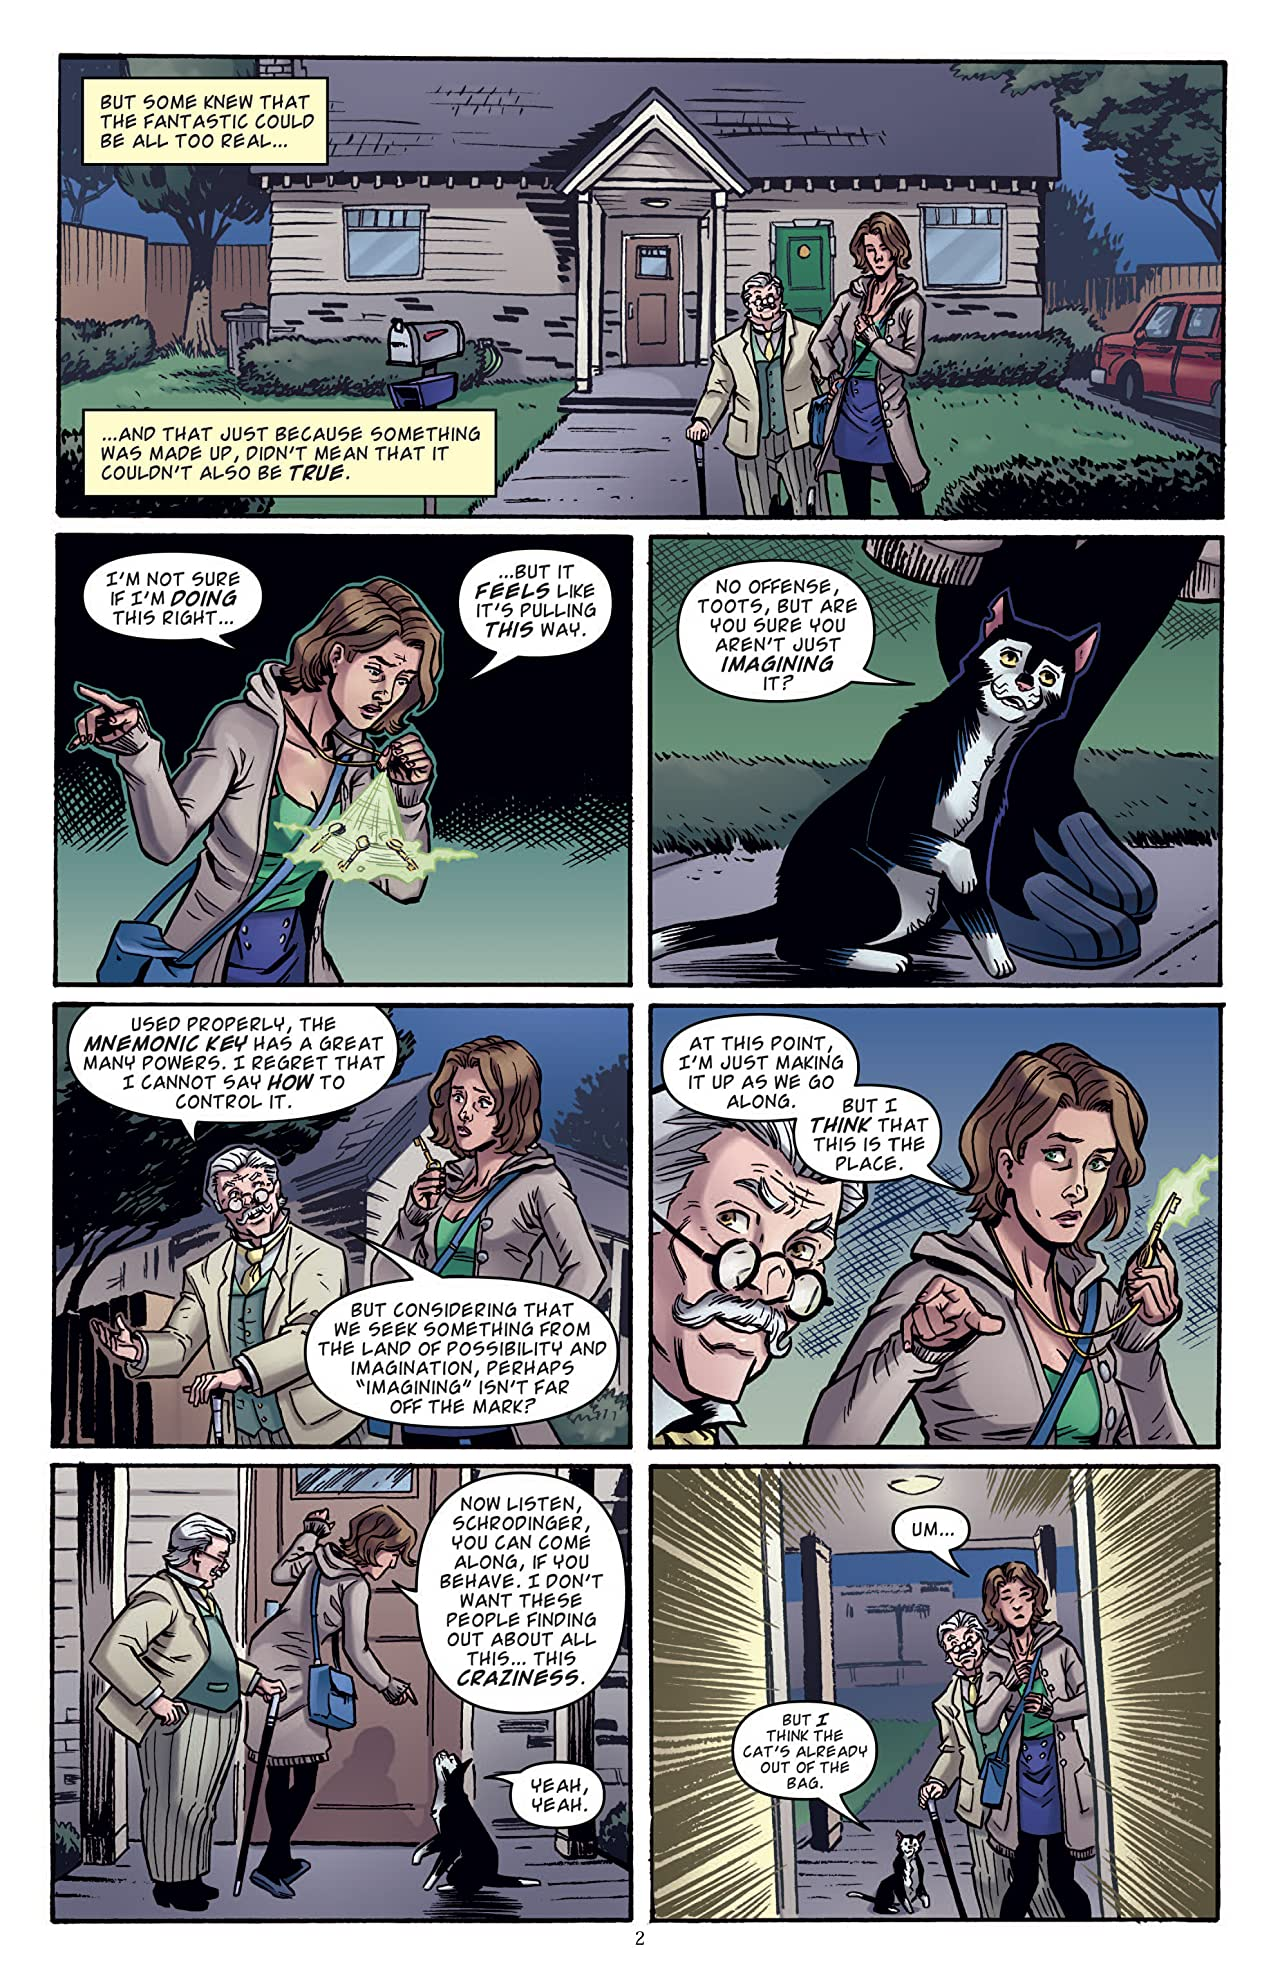 Memorial: Imaginary Fiends #2 (of 9)